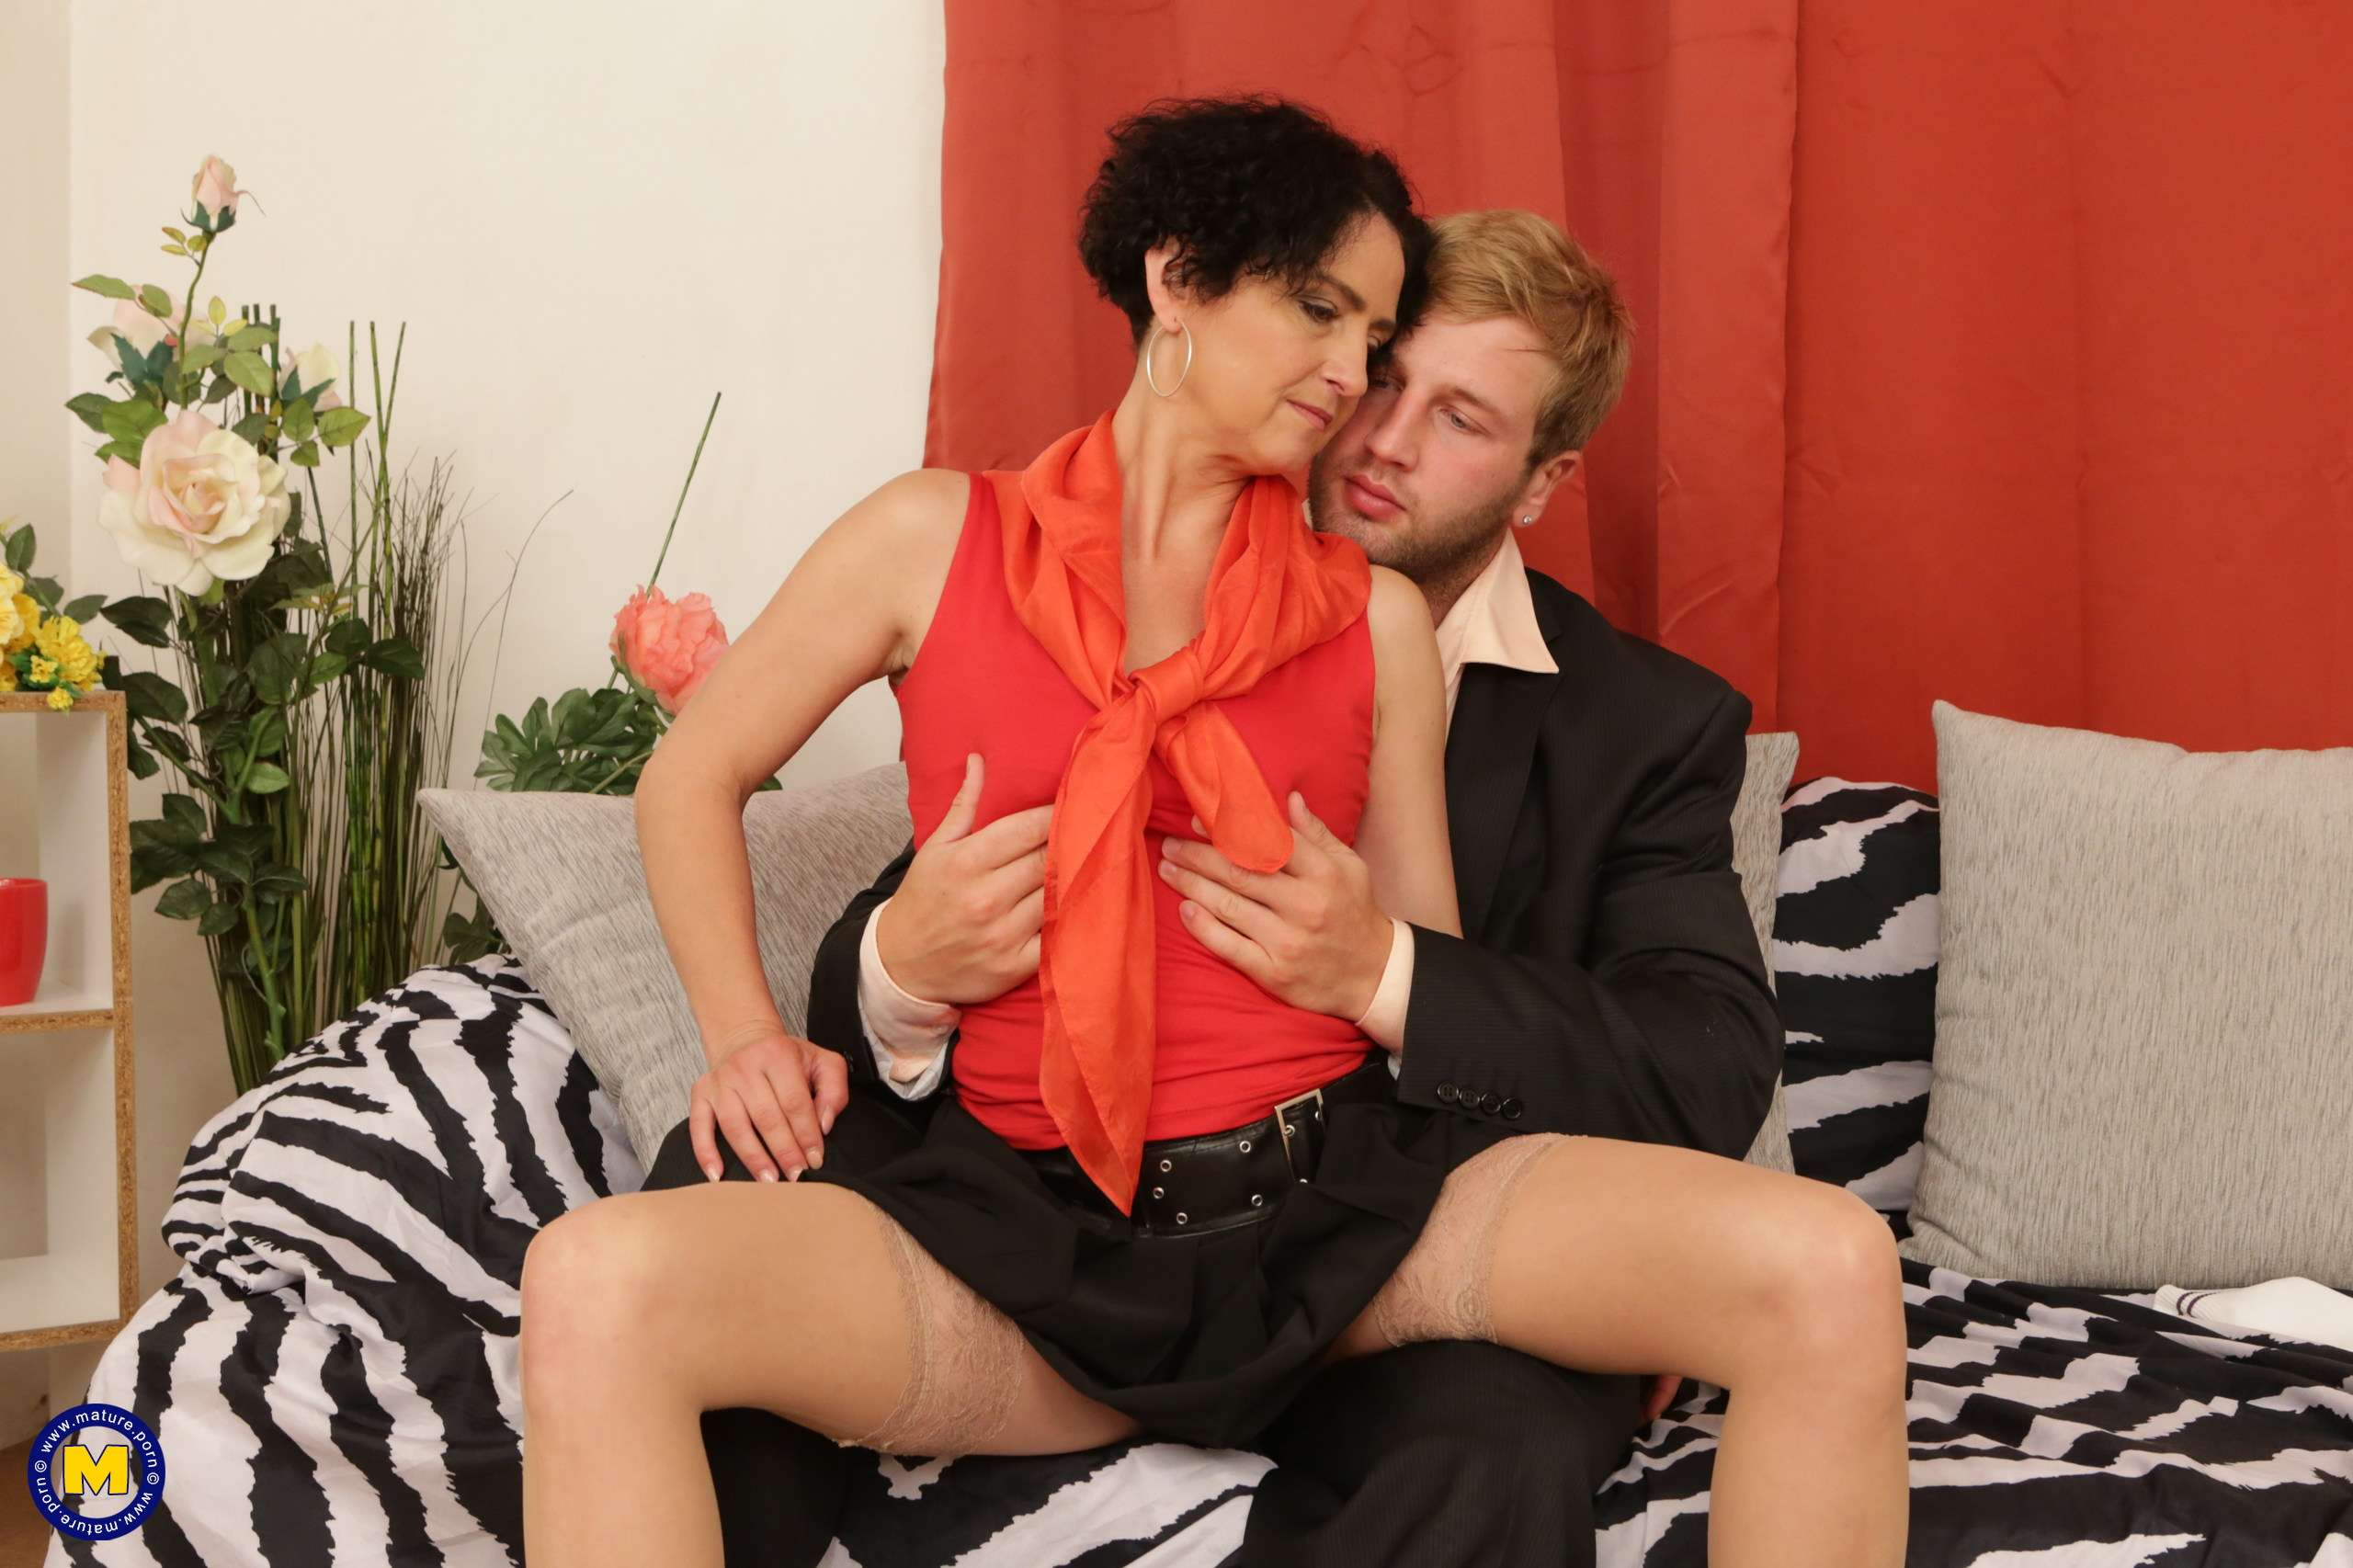 Horny housewife fooling around with musculated younger lover